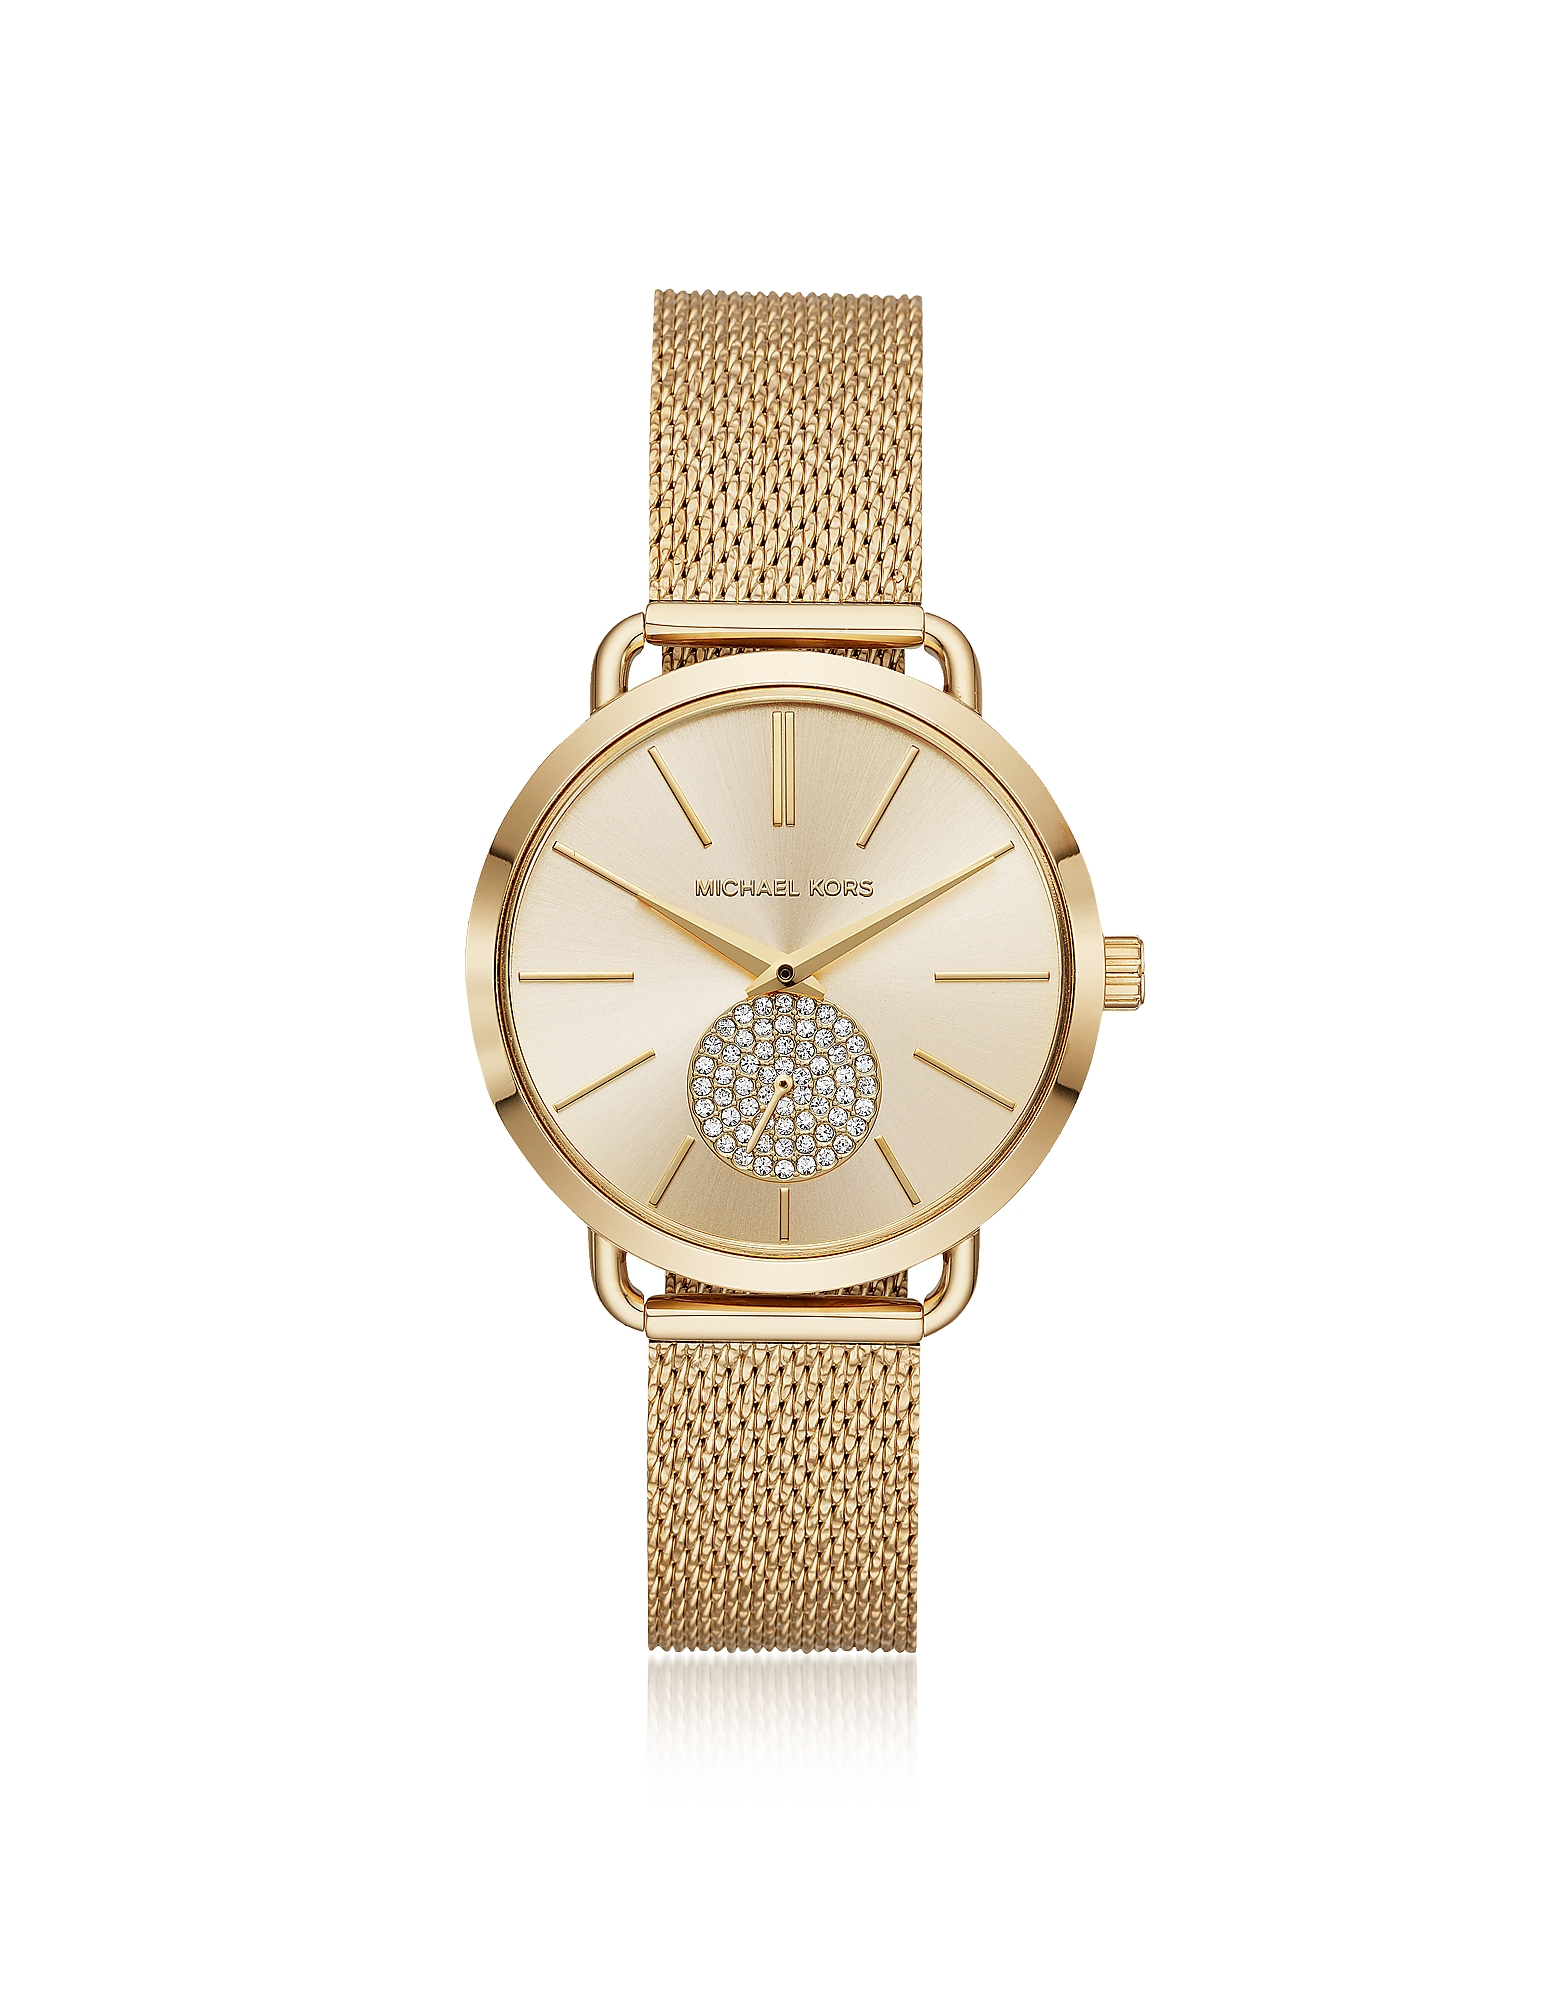 Michael Kors Women's Watches, Portia Mesh Gold Tone Watch